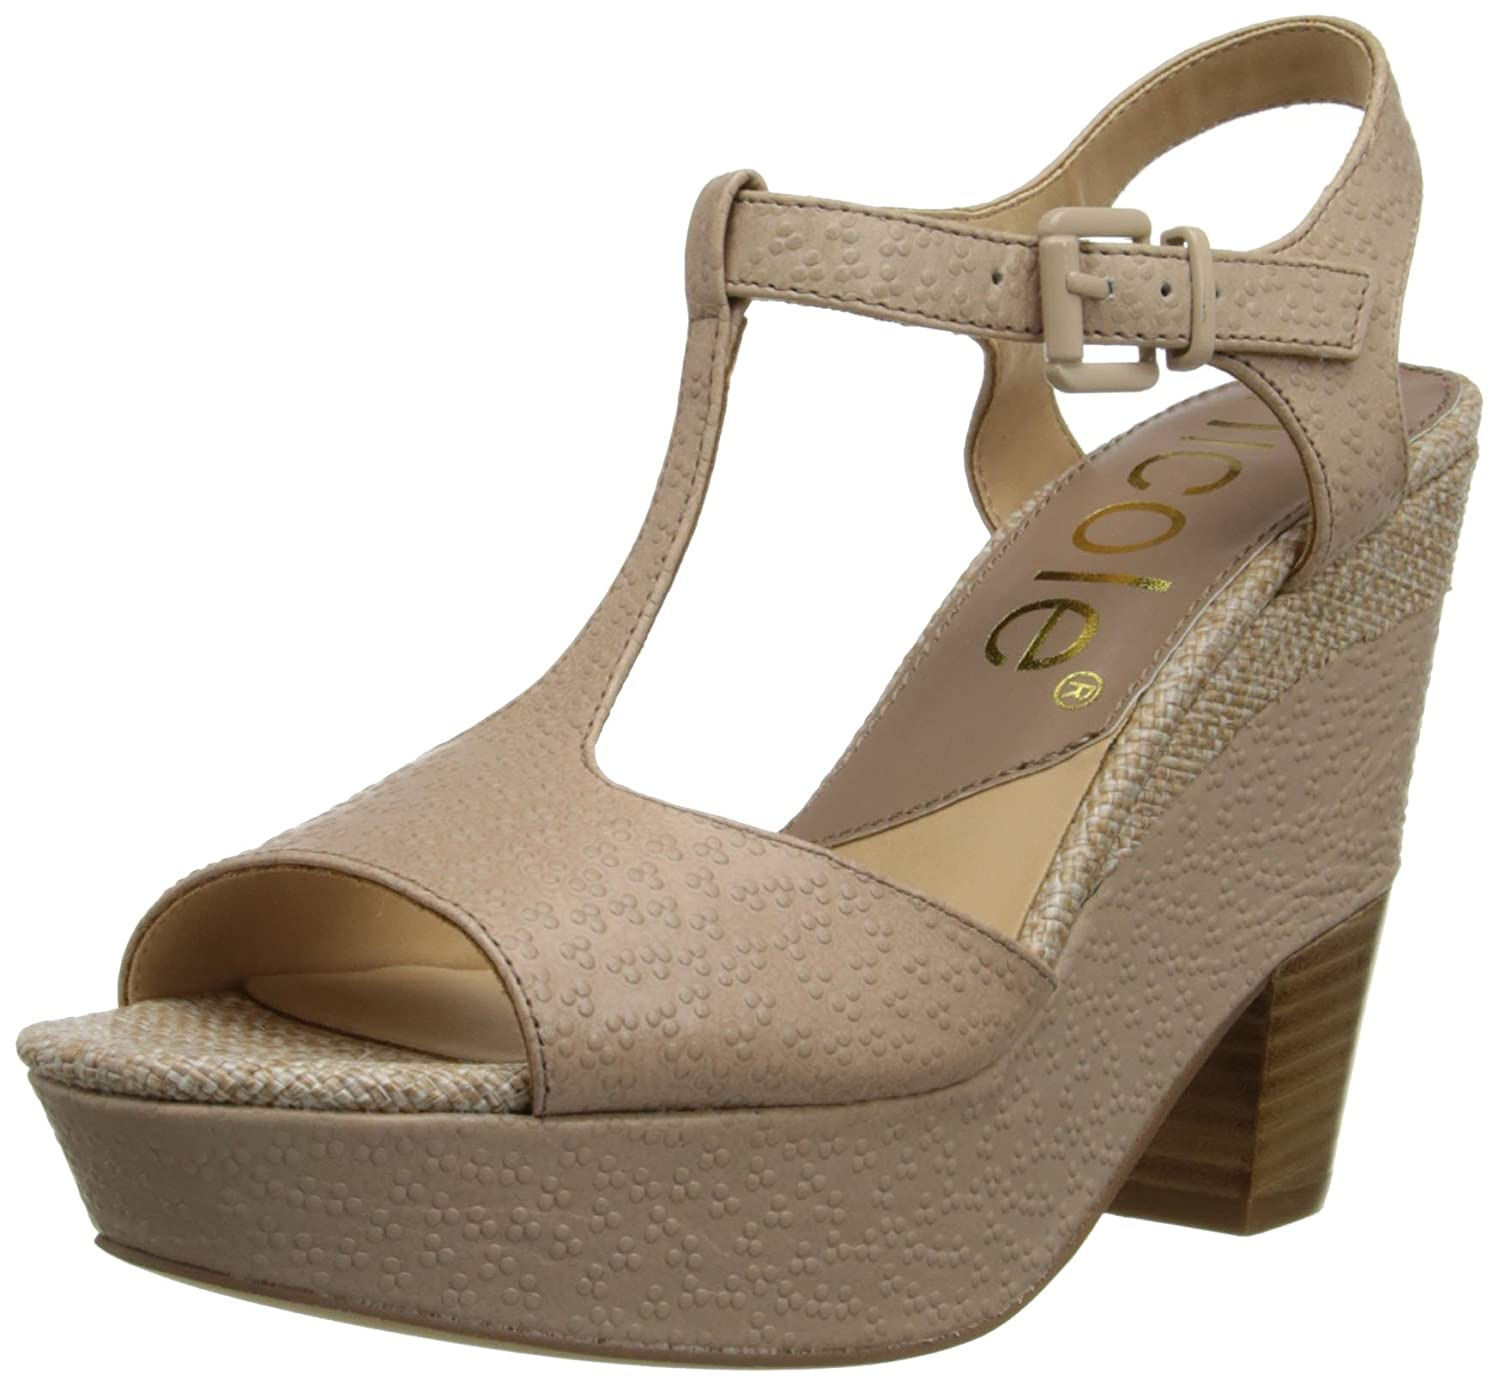 ca267601656 Nicole Women s Gerry Wedge Sandal new - plancap.com.ar